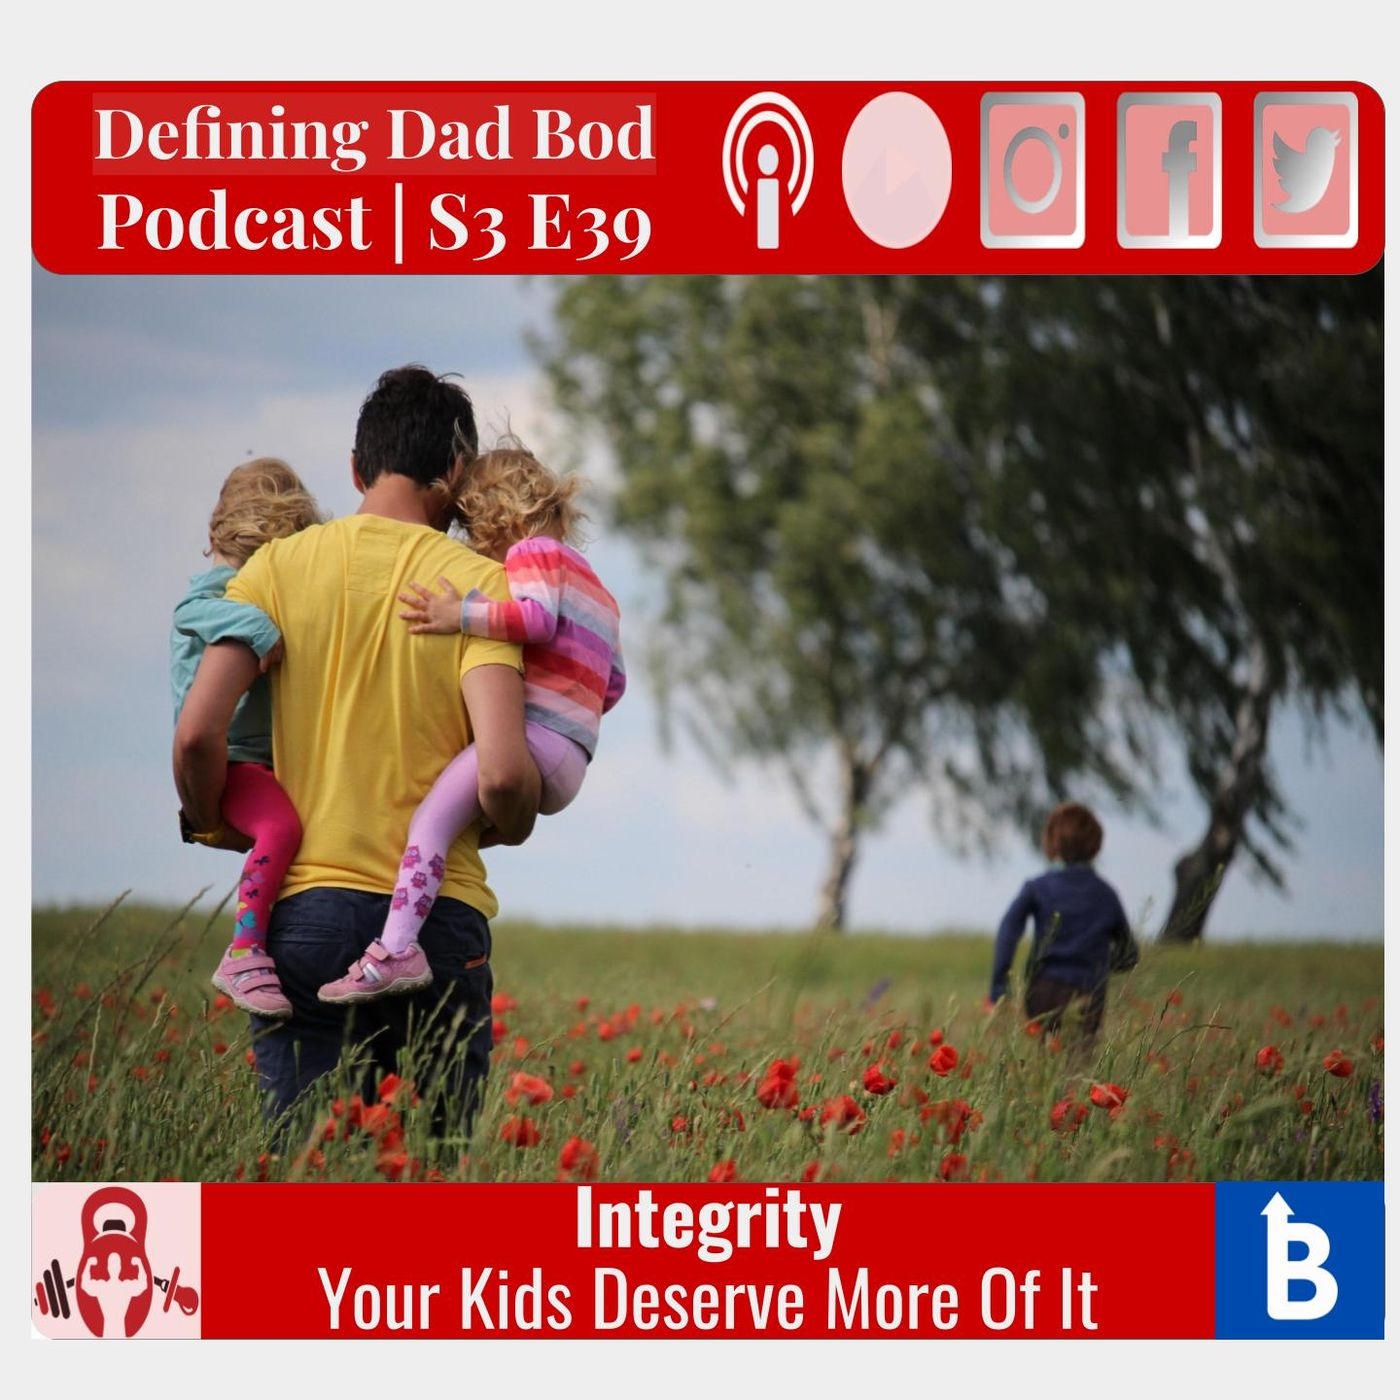 S3 E39 Integrity | What Our Kids Deserve From Our Exercise And Nutrition